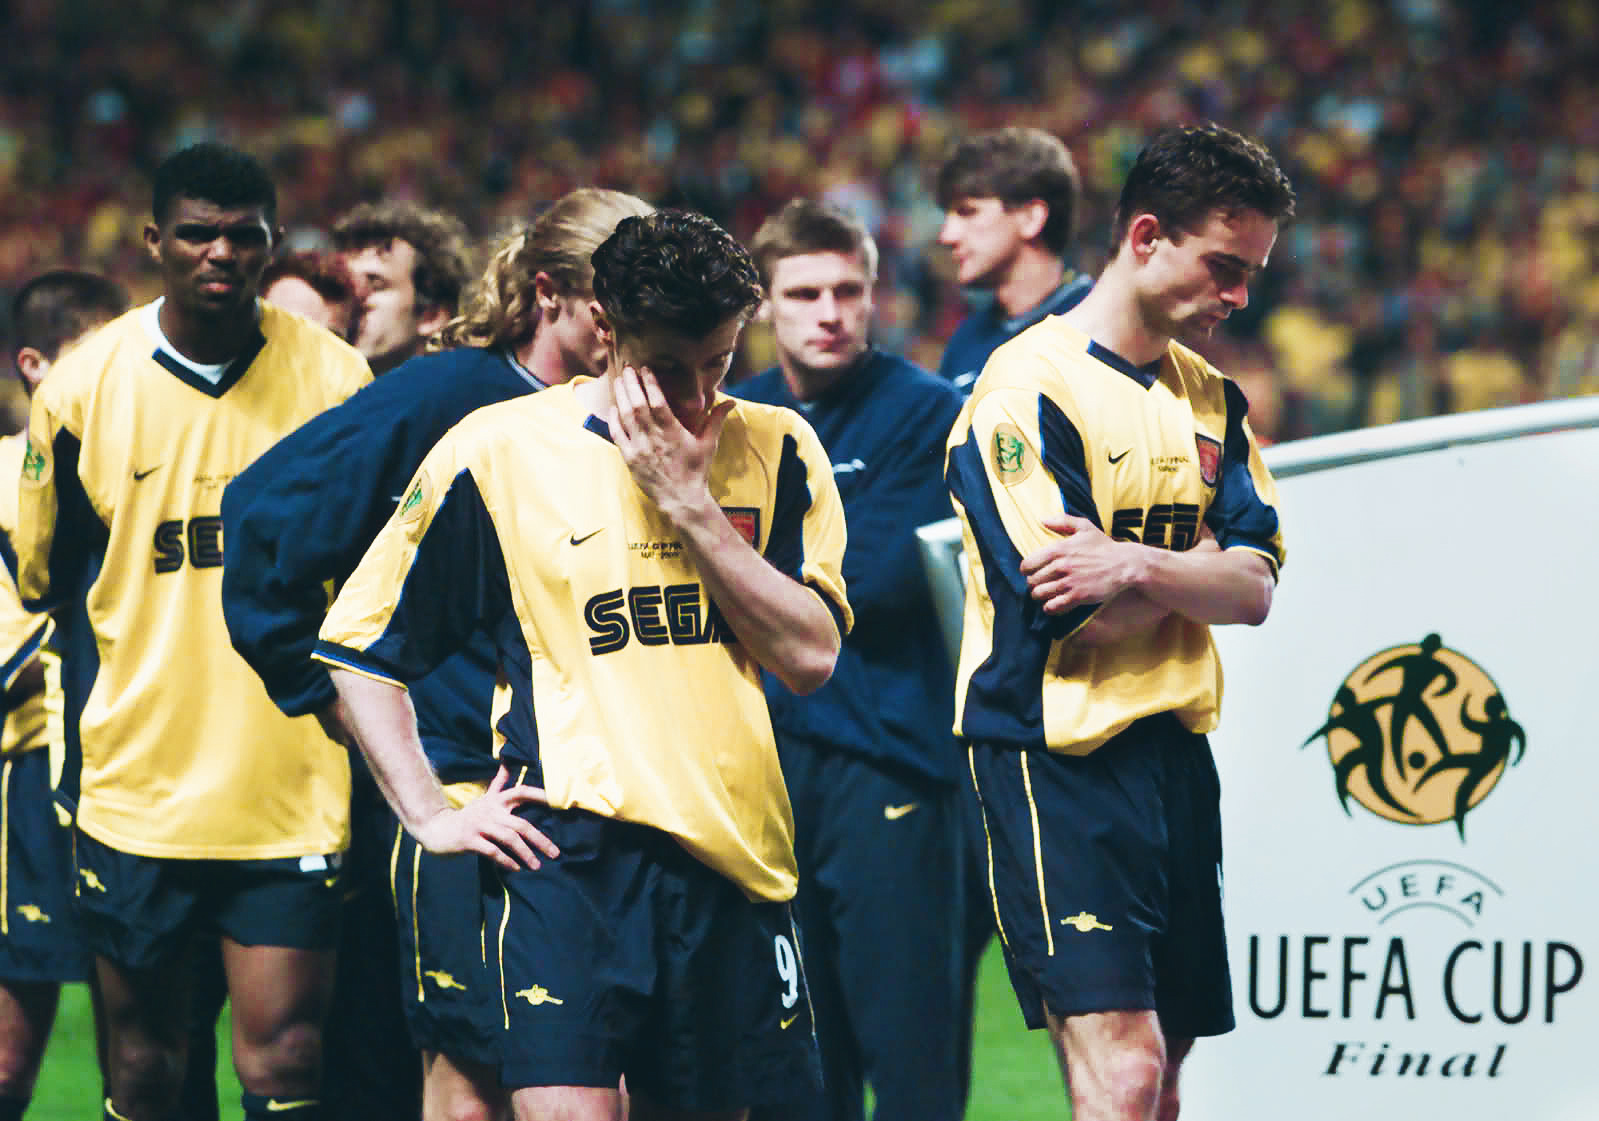 Arsenal S Uefa Cup Adventure Of 1999 2000